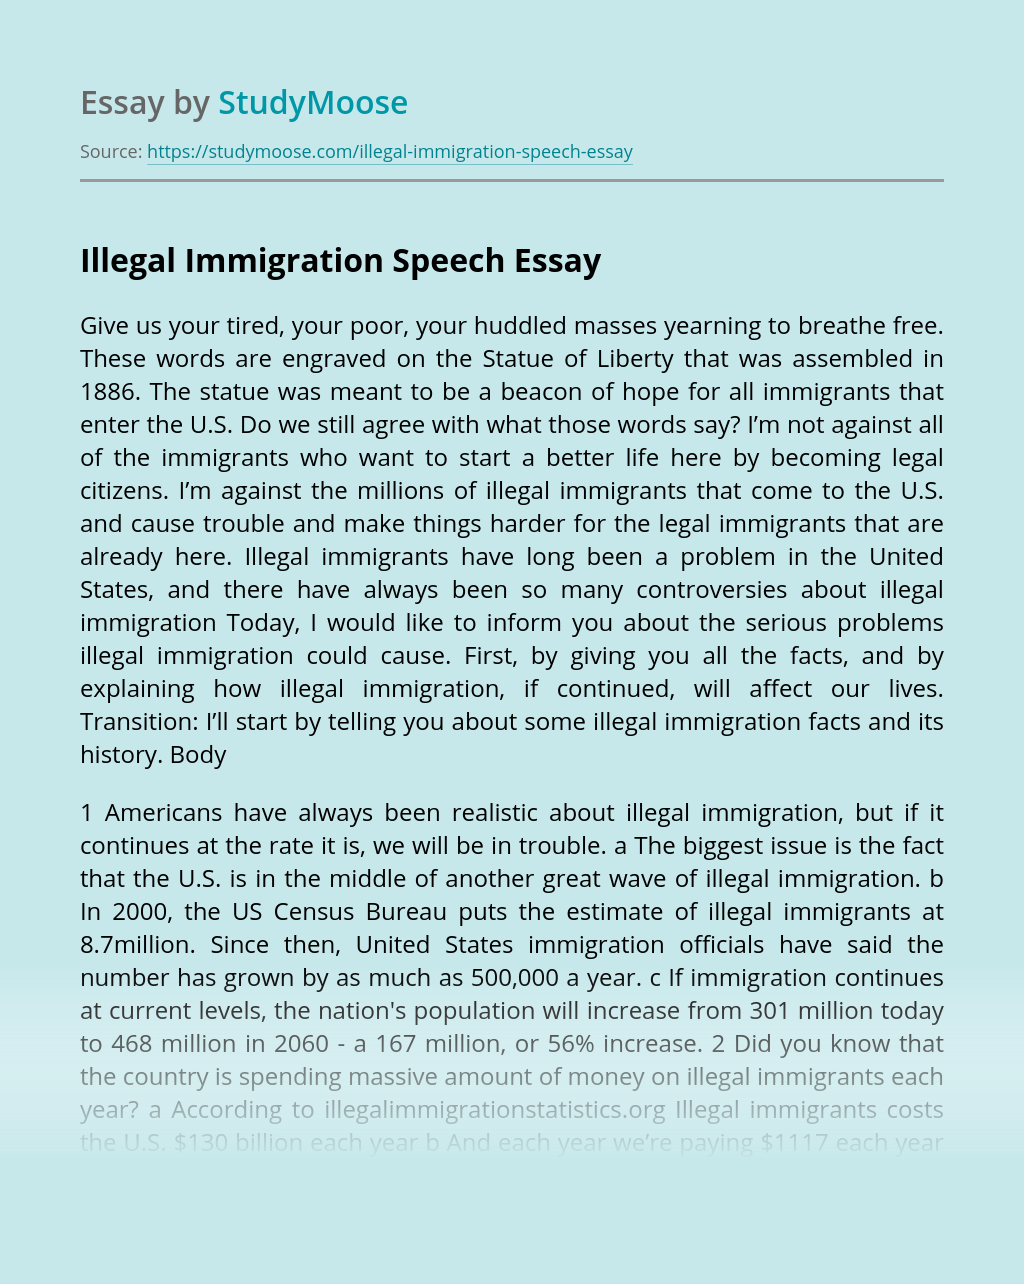 Illegal Immigration Speech